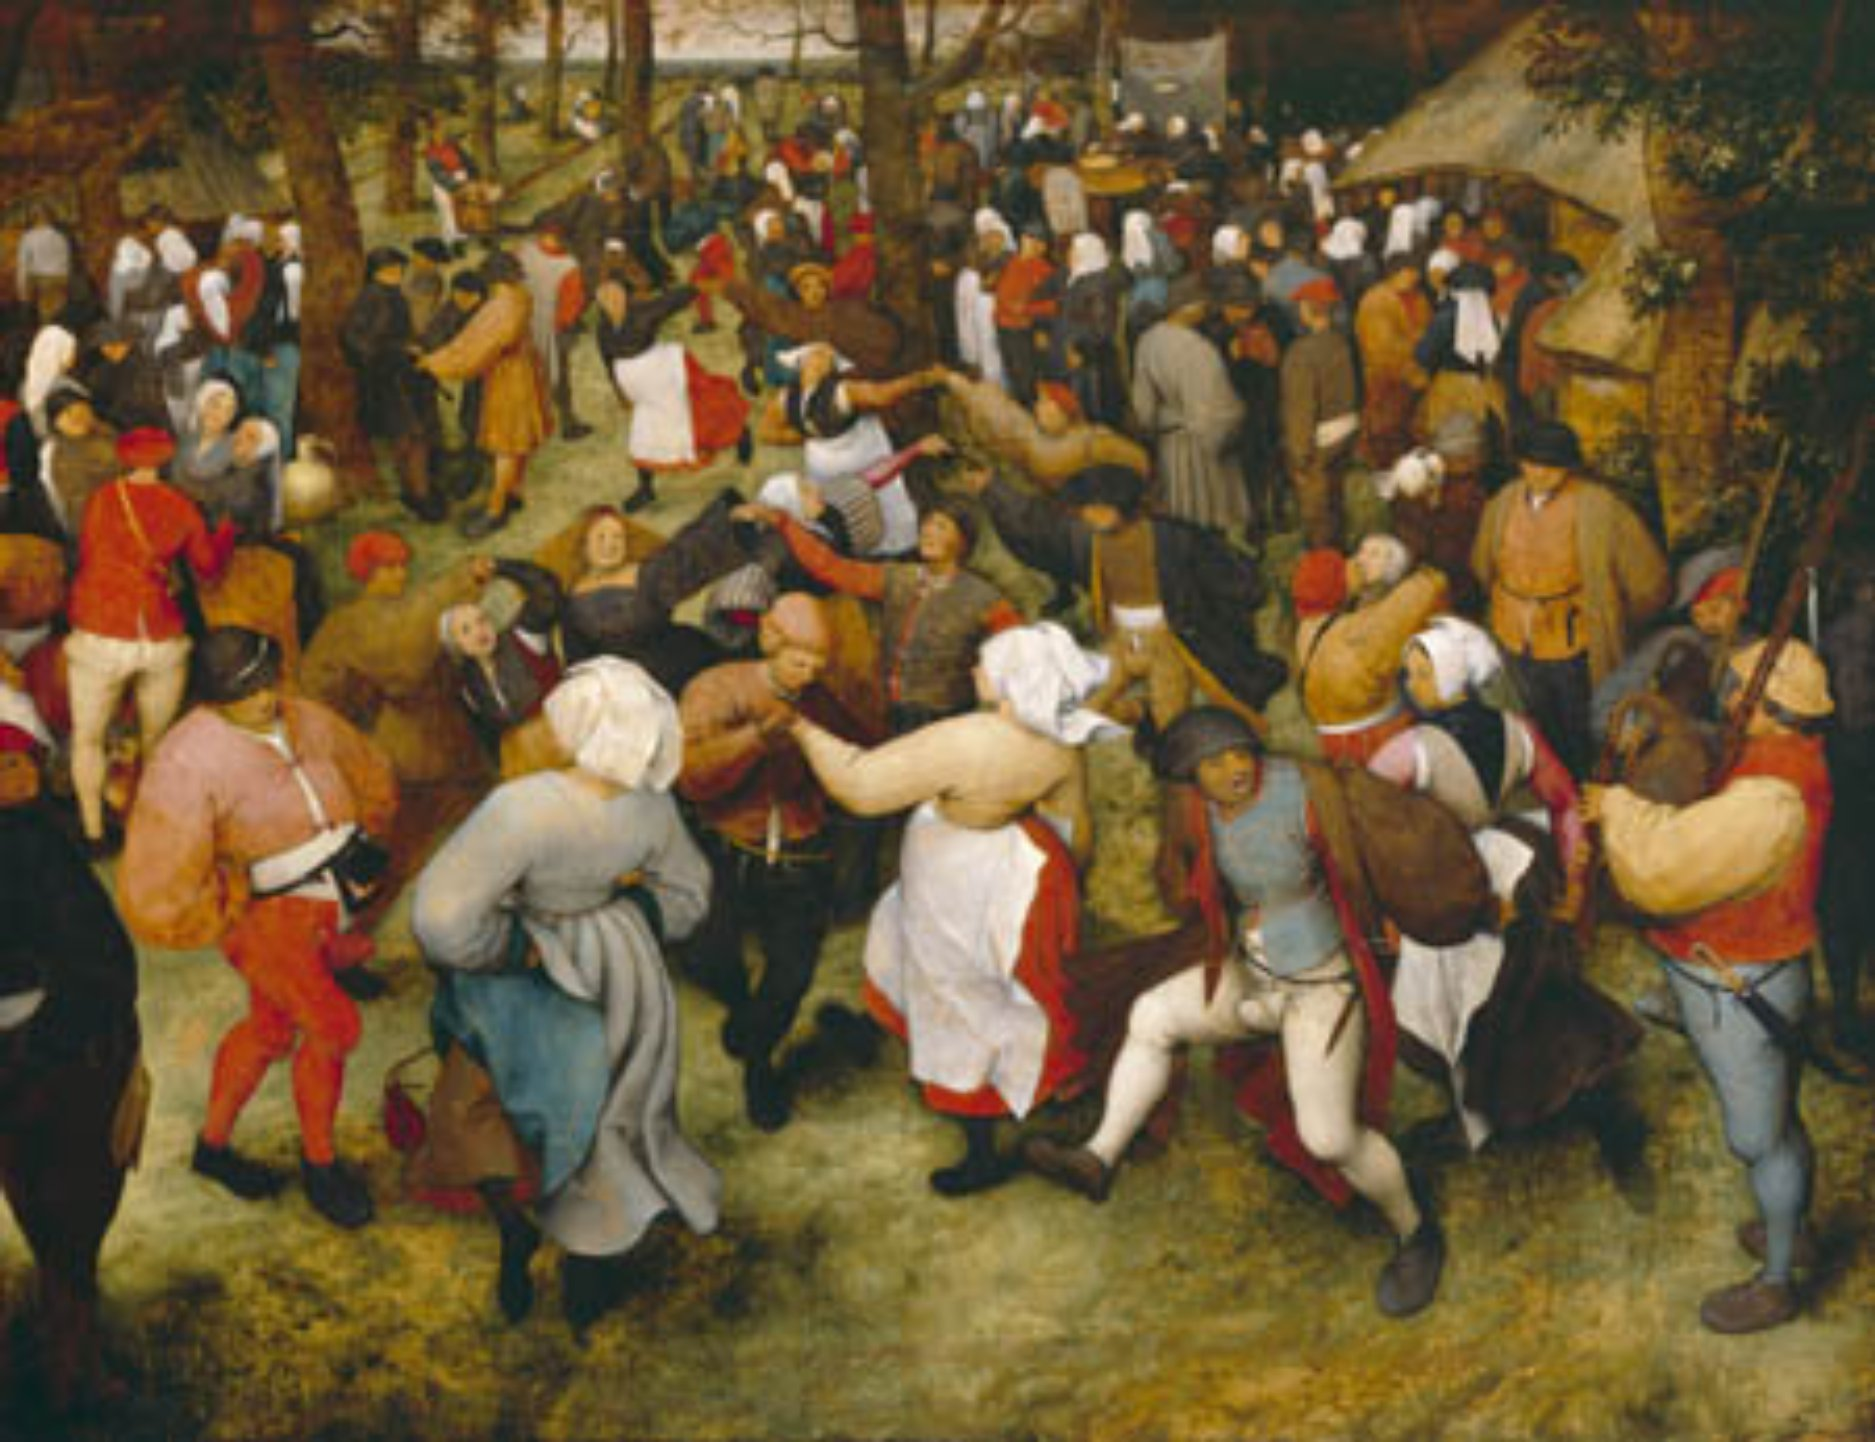 files/images/pieter-brueghel-wedding-dance.jpg, size: 319512 bytes, type:  image/jpeg